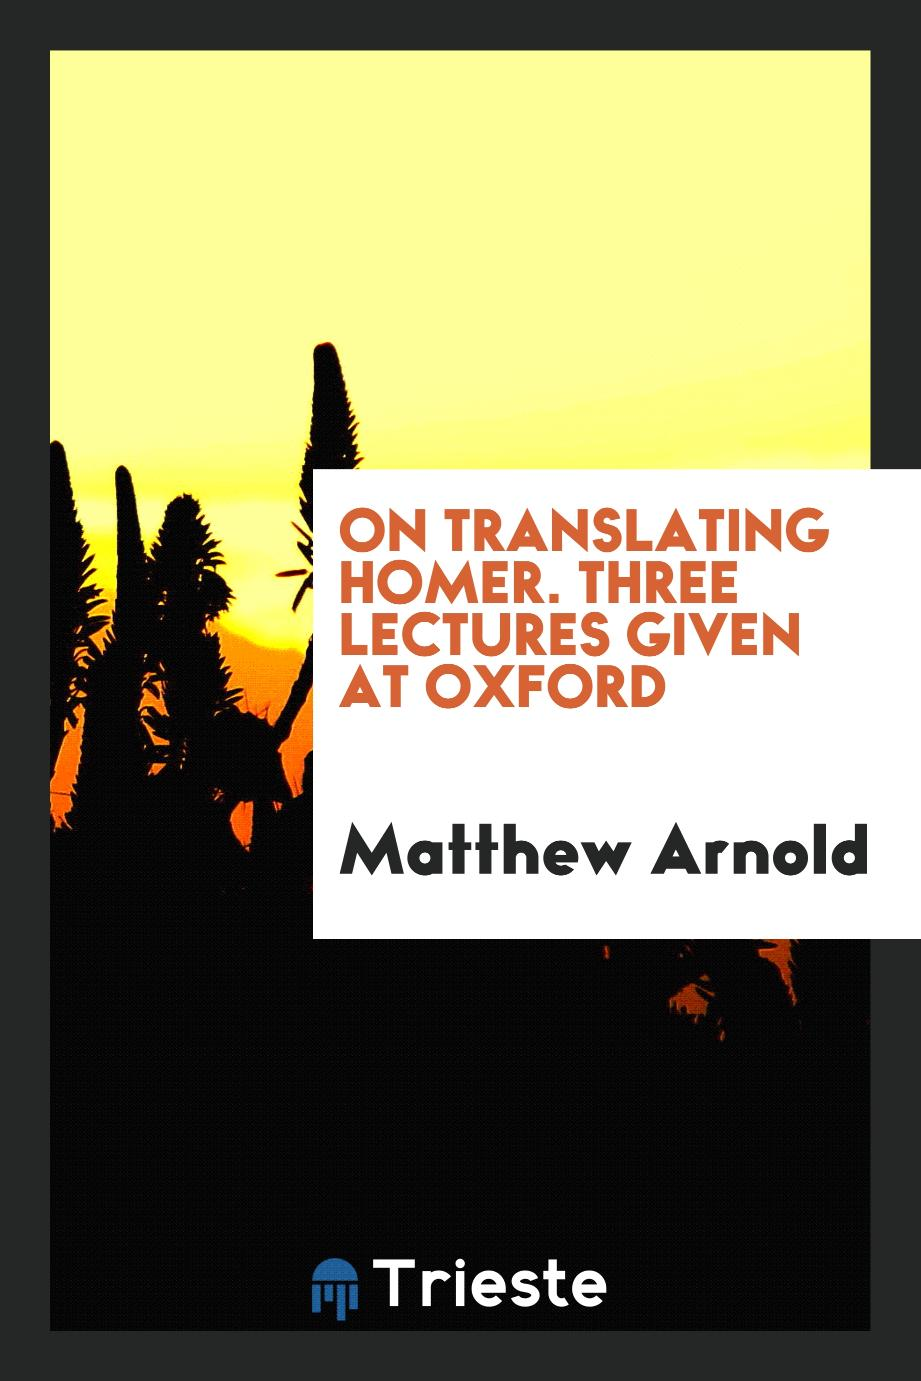 On translating Homer. Three lectures given at Oxford